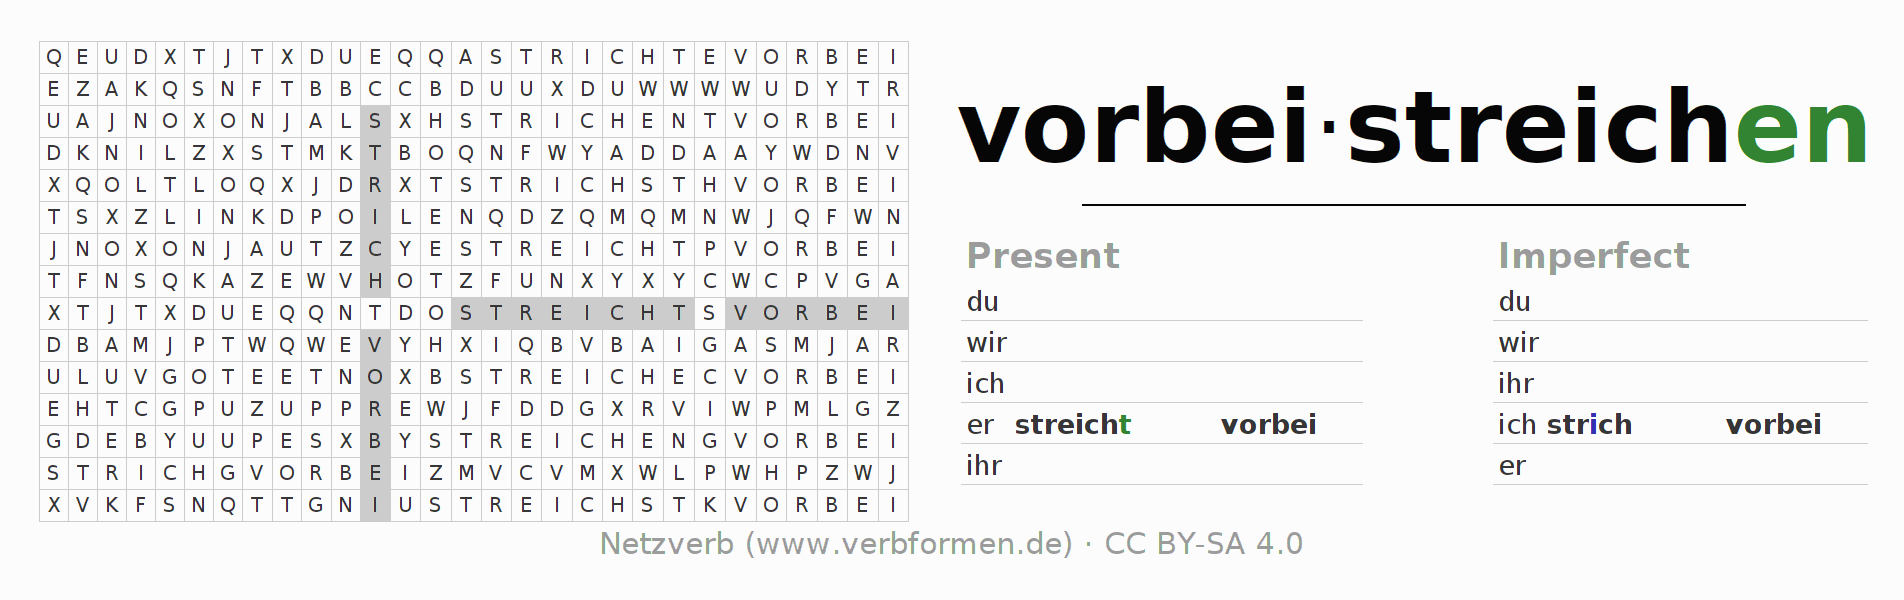 Word search puzzle for the conjugation of the verb vorbeistreichen